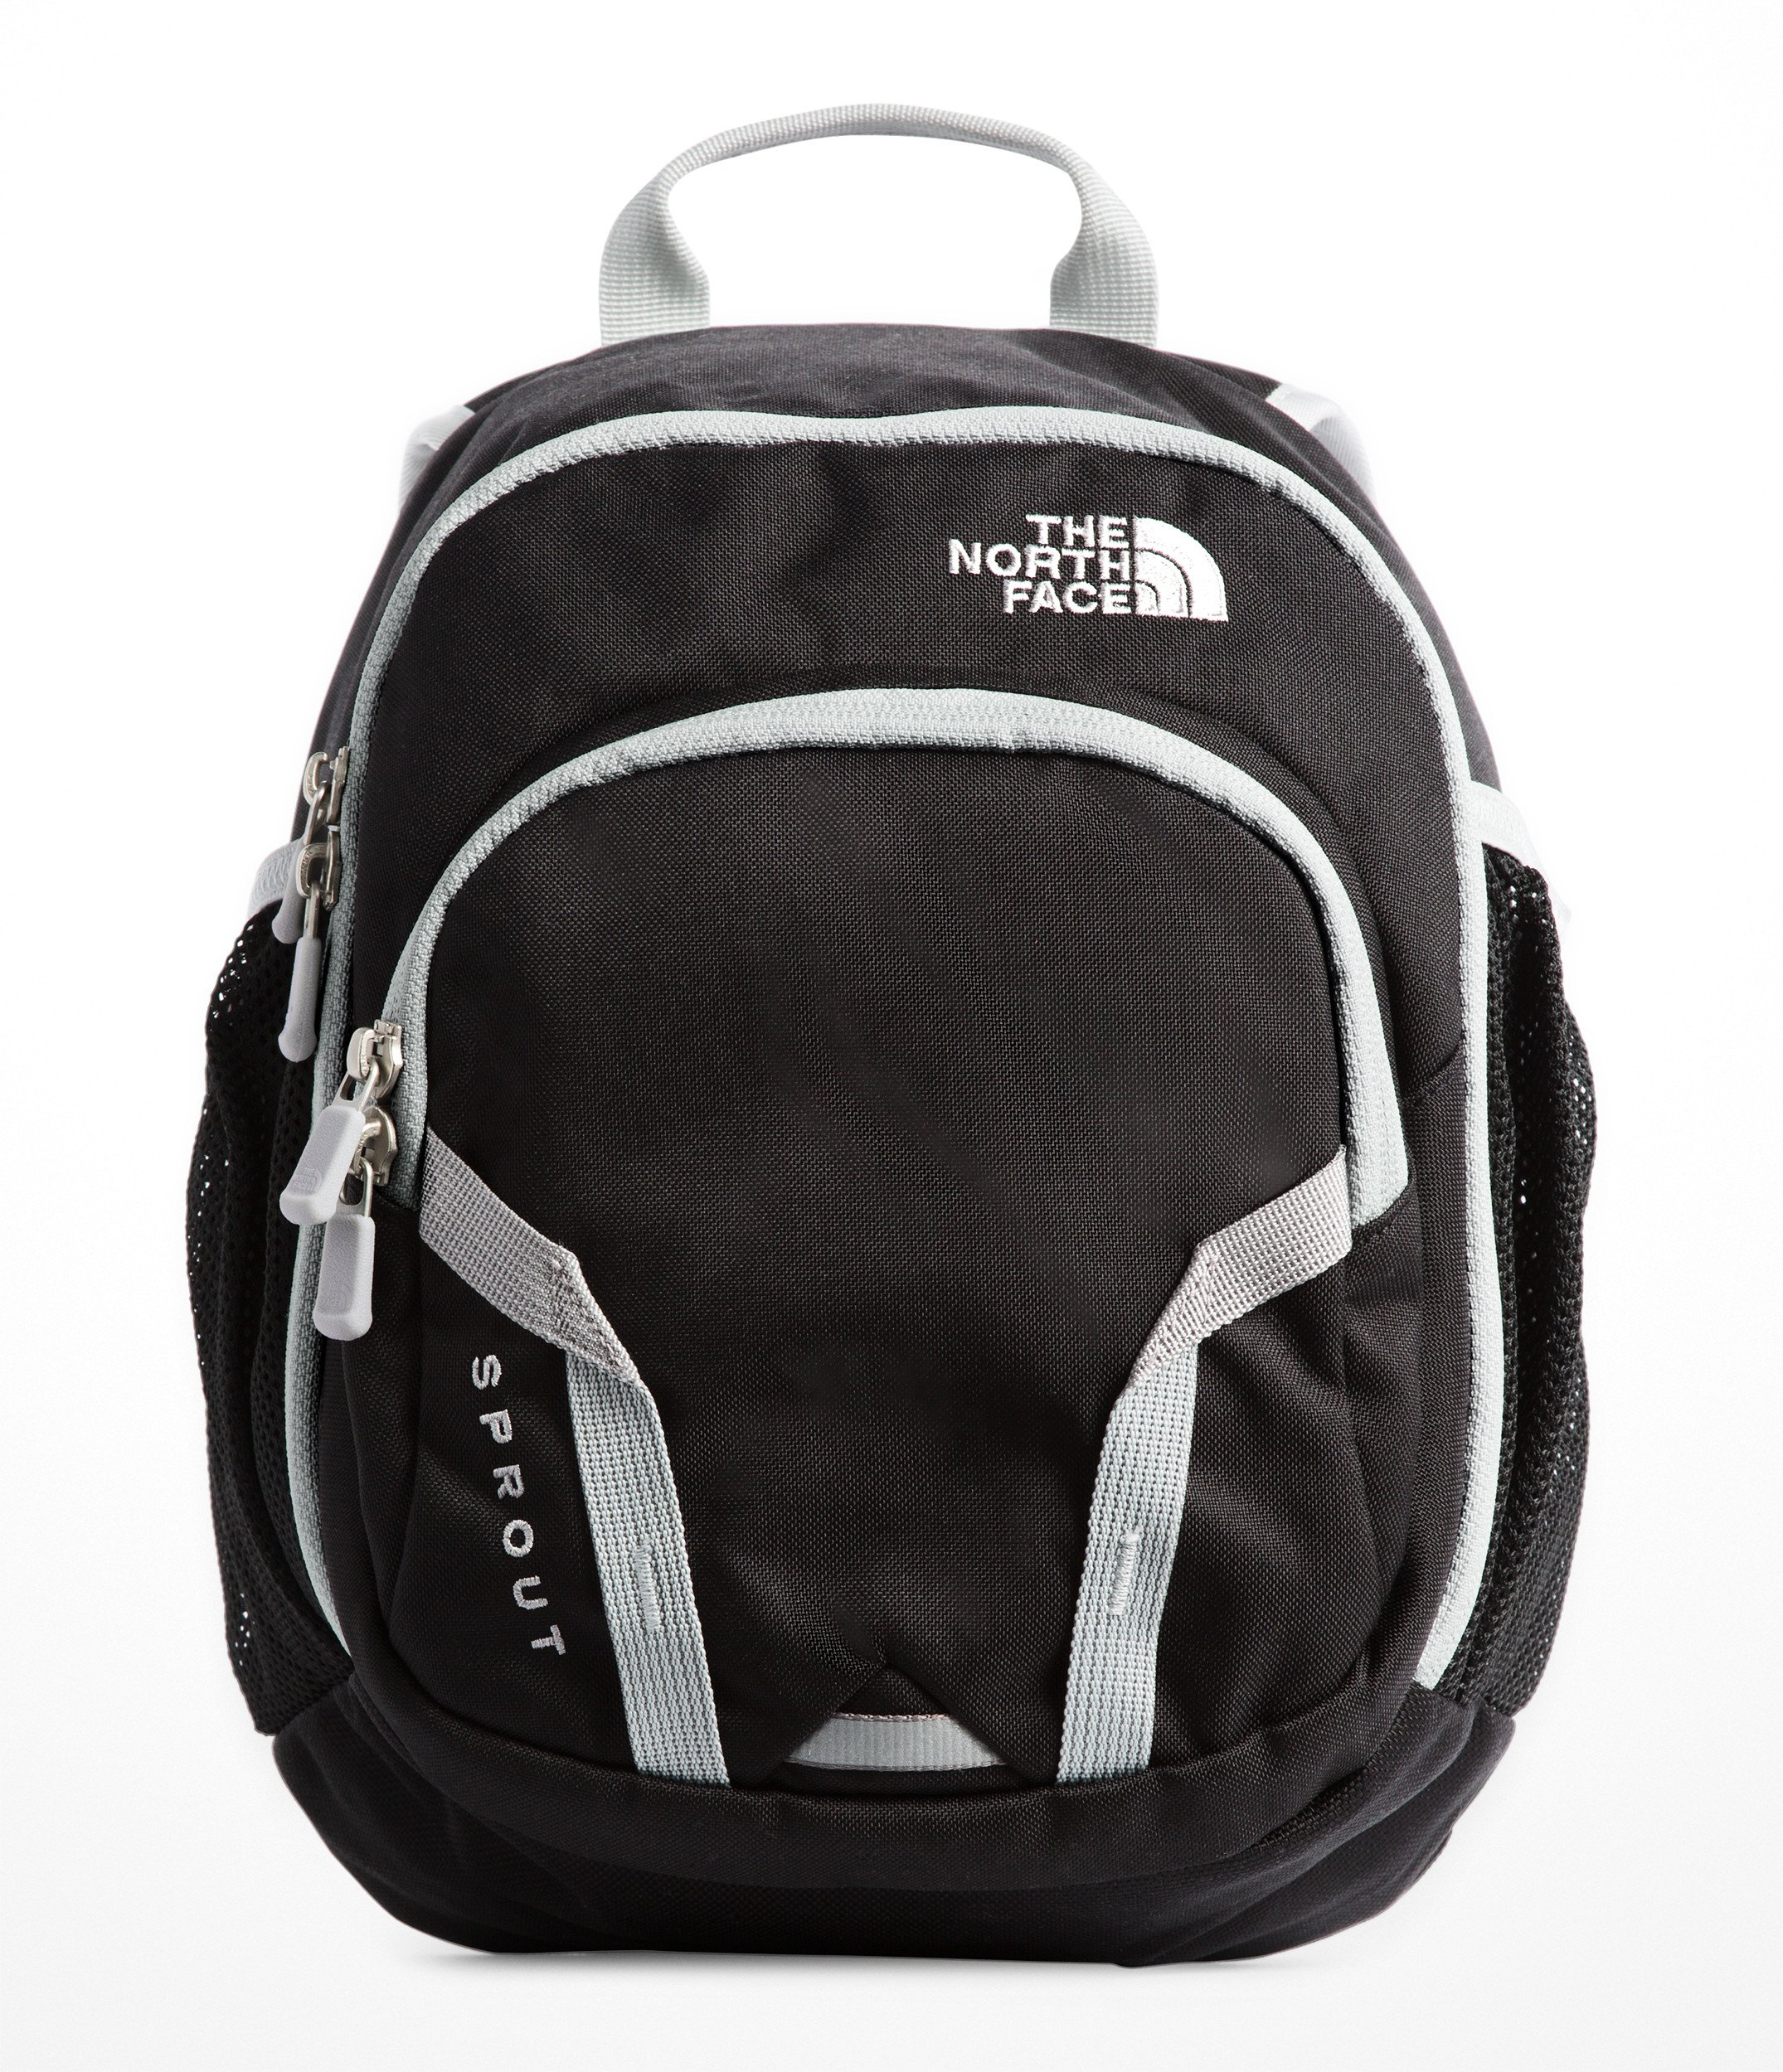 The North Face Youth Sprout - TNF Black & High Rise Grey - OS